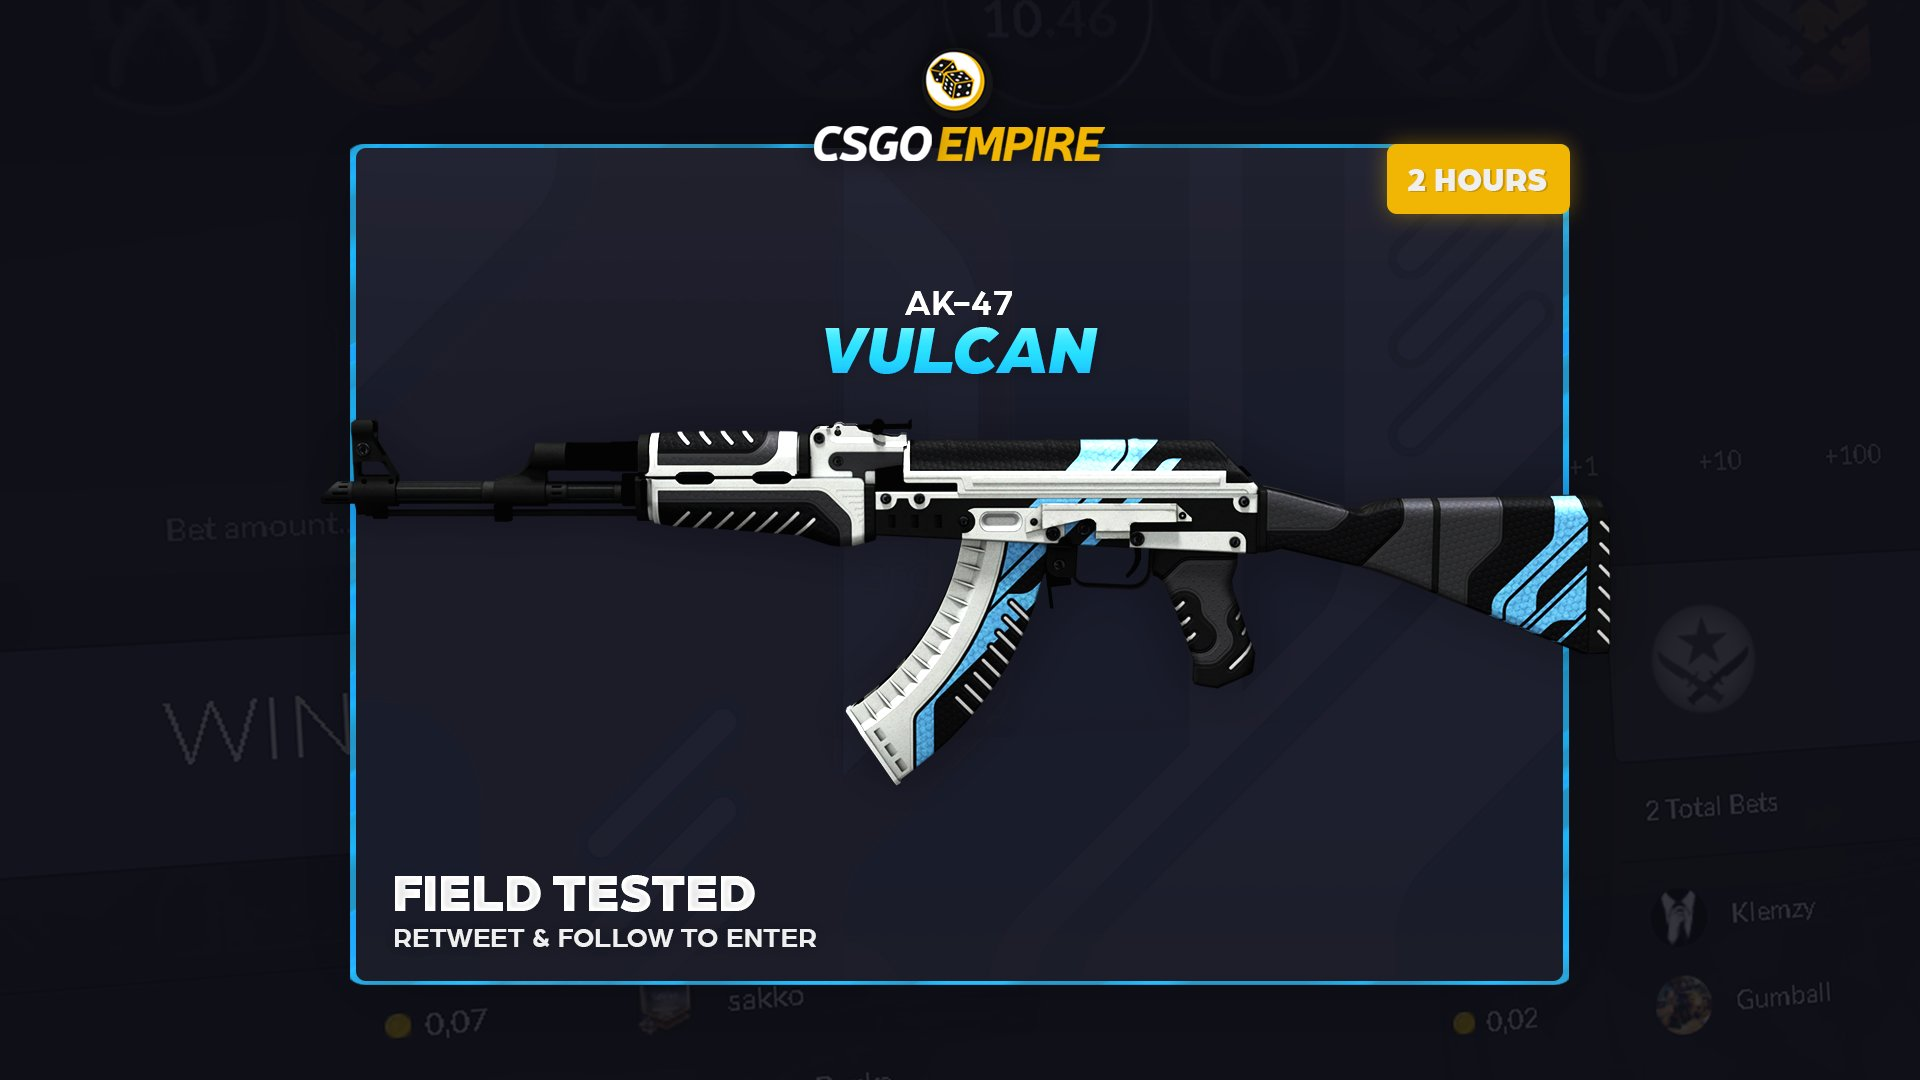 AK-47   Vulcan (FT) Giveaway! ��  To enter: -RT -Follow  The winner will be picked in 2 hours! Good luck �� https://t.co/hpdR2iibrV